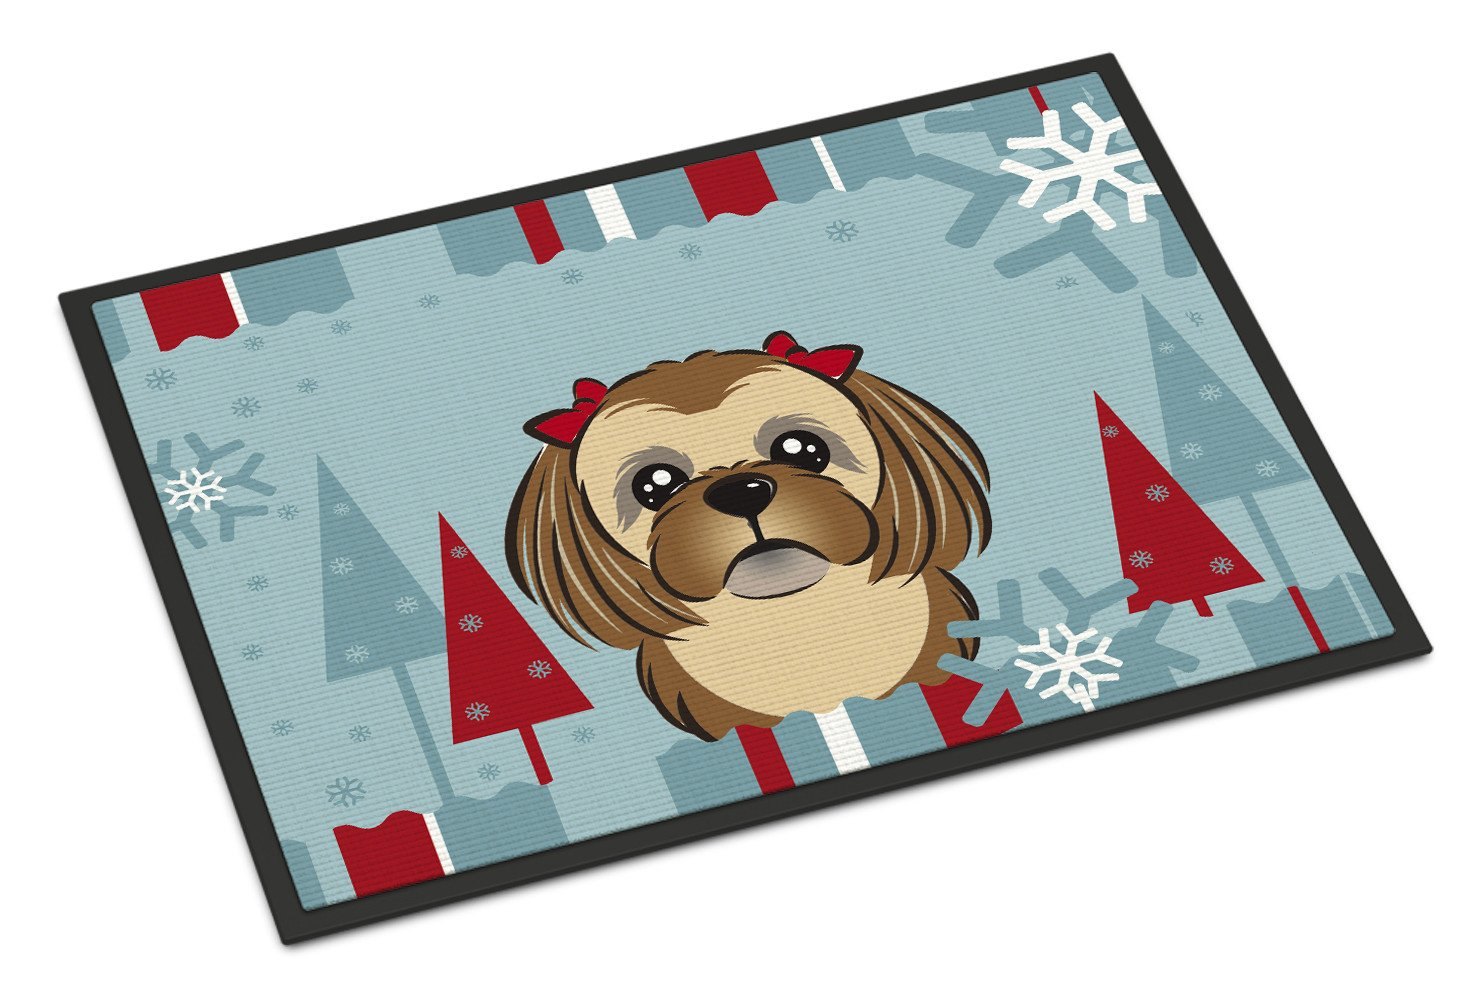 Winter Holiday Chocolate Brown Shih Tzu Indoor or Outdoor Mat 18x27 BB1745MAT - the-store.com